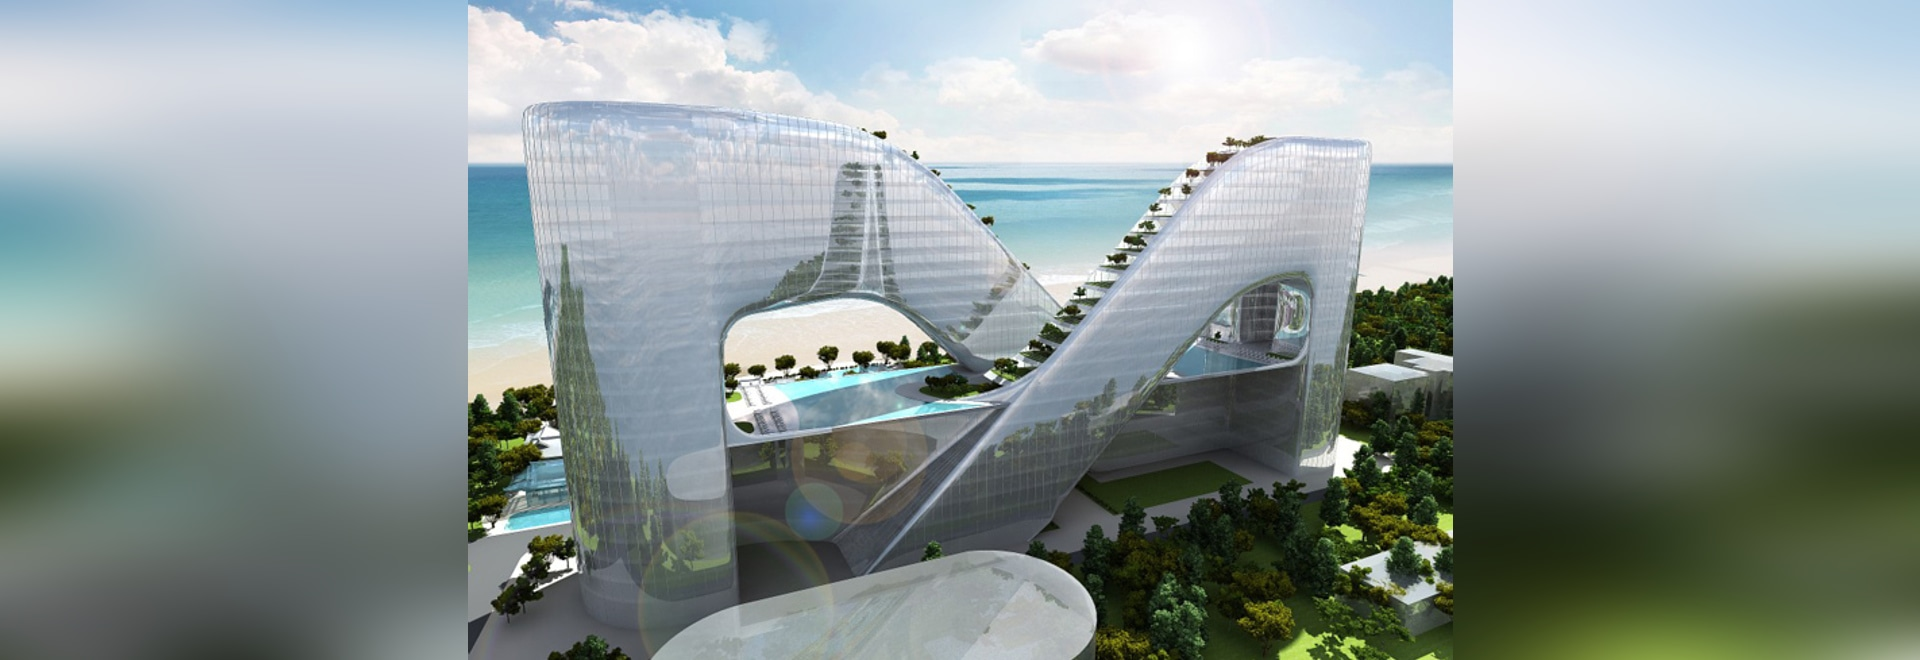 sky garden lined hotel in pyeongchang is a sustainable retreat for